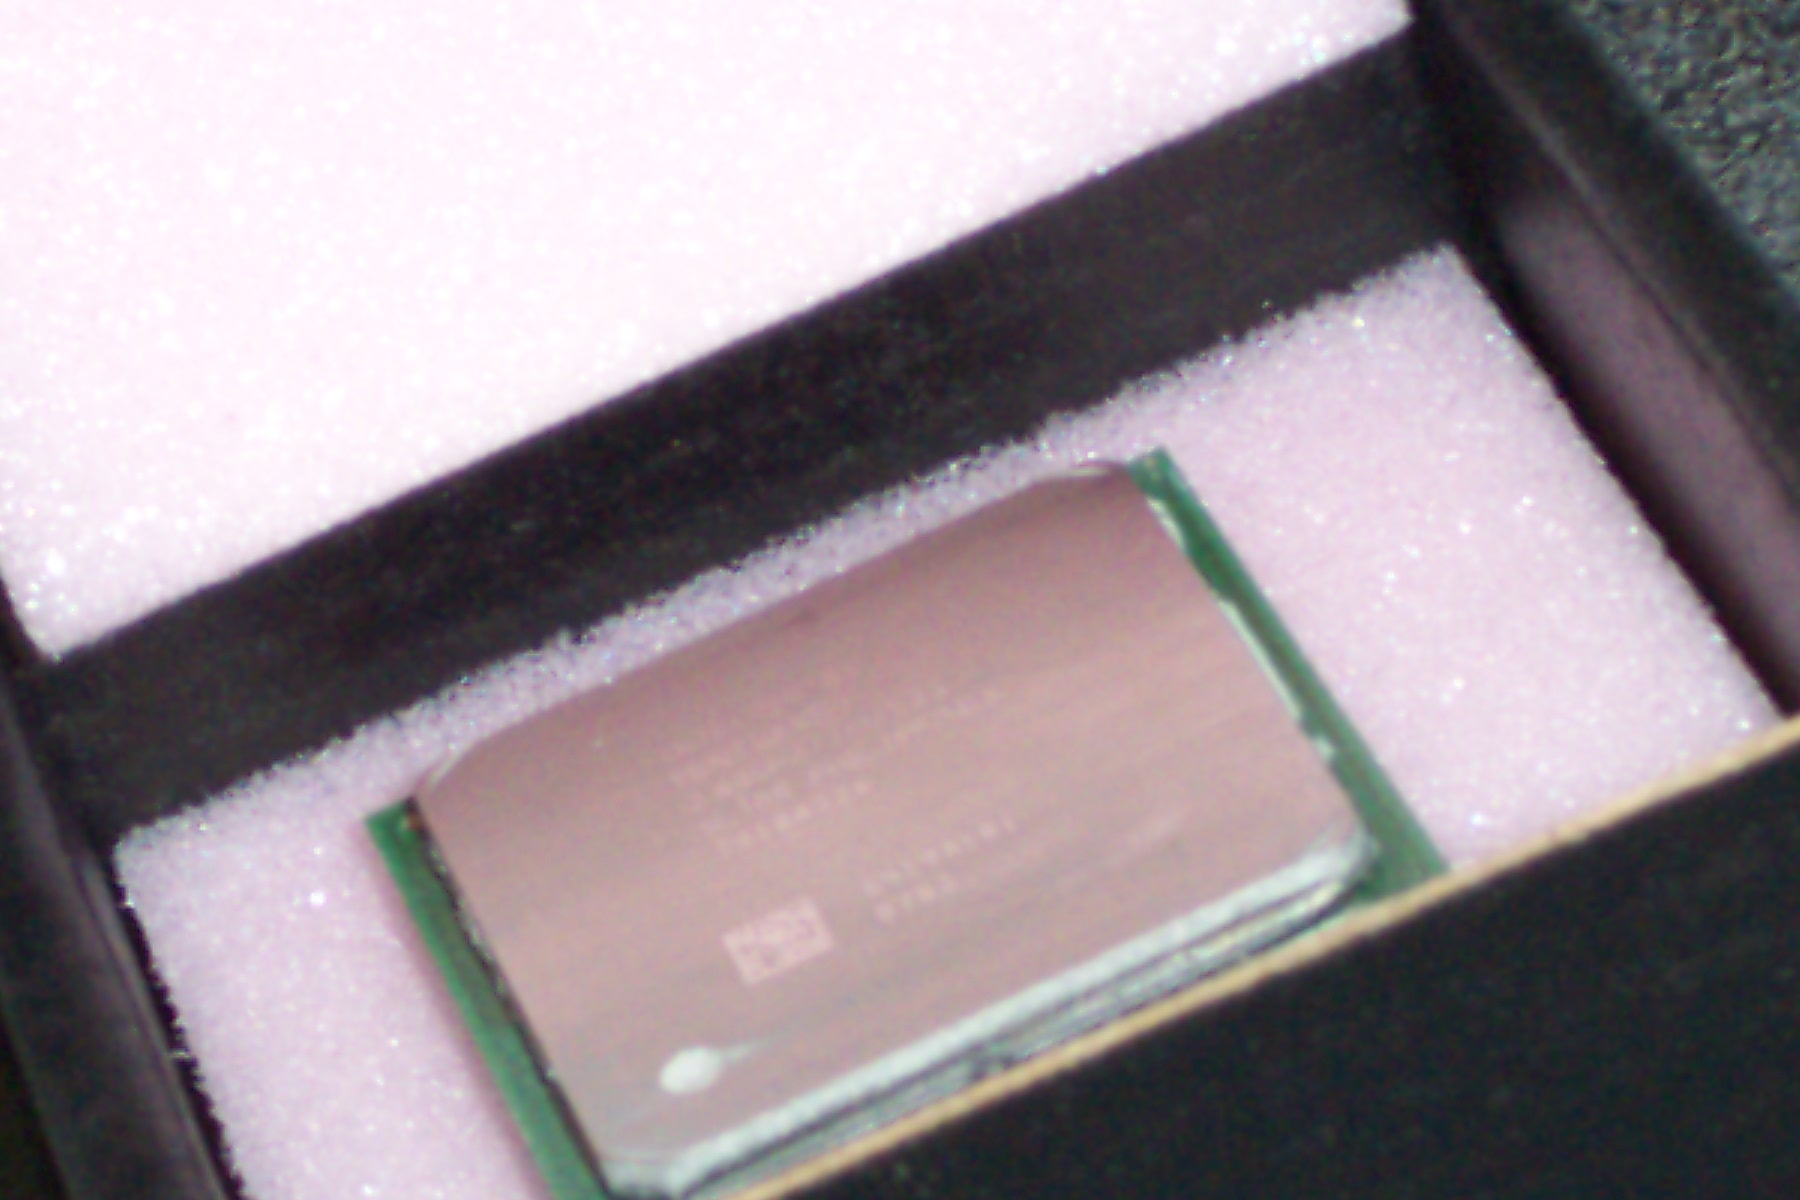 Intel SL7D8 Pentium 4 2.8GHz 533MHz 1MB Socket 478 Processor